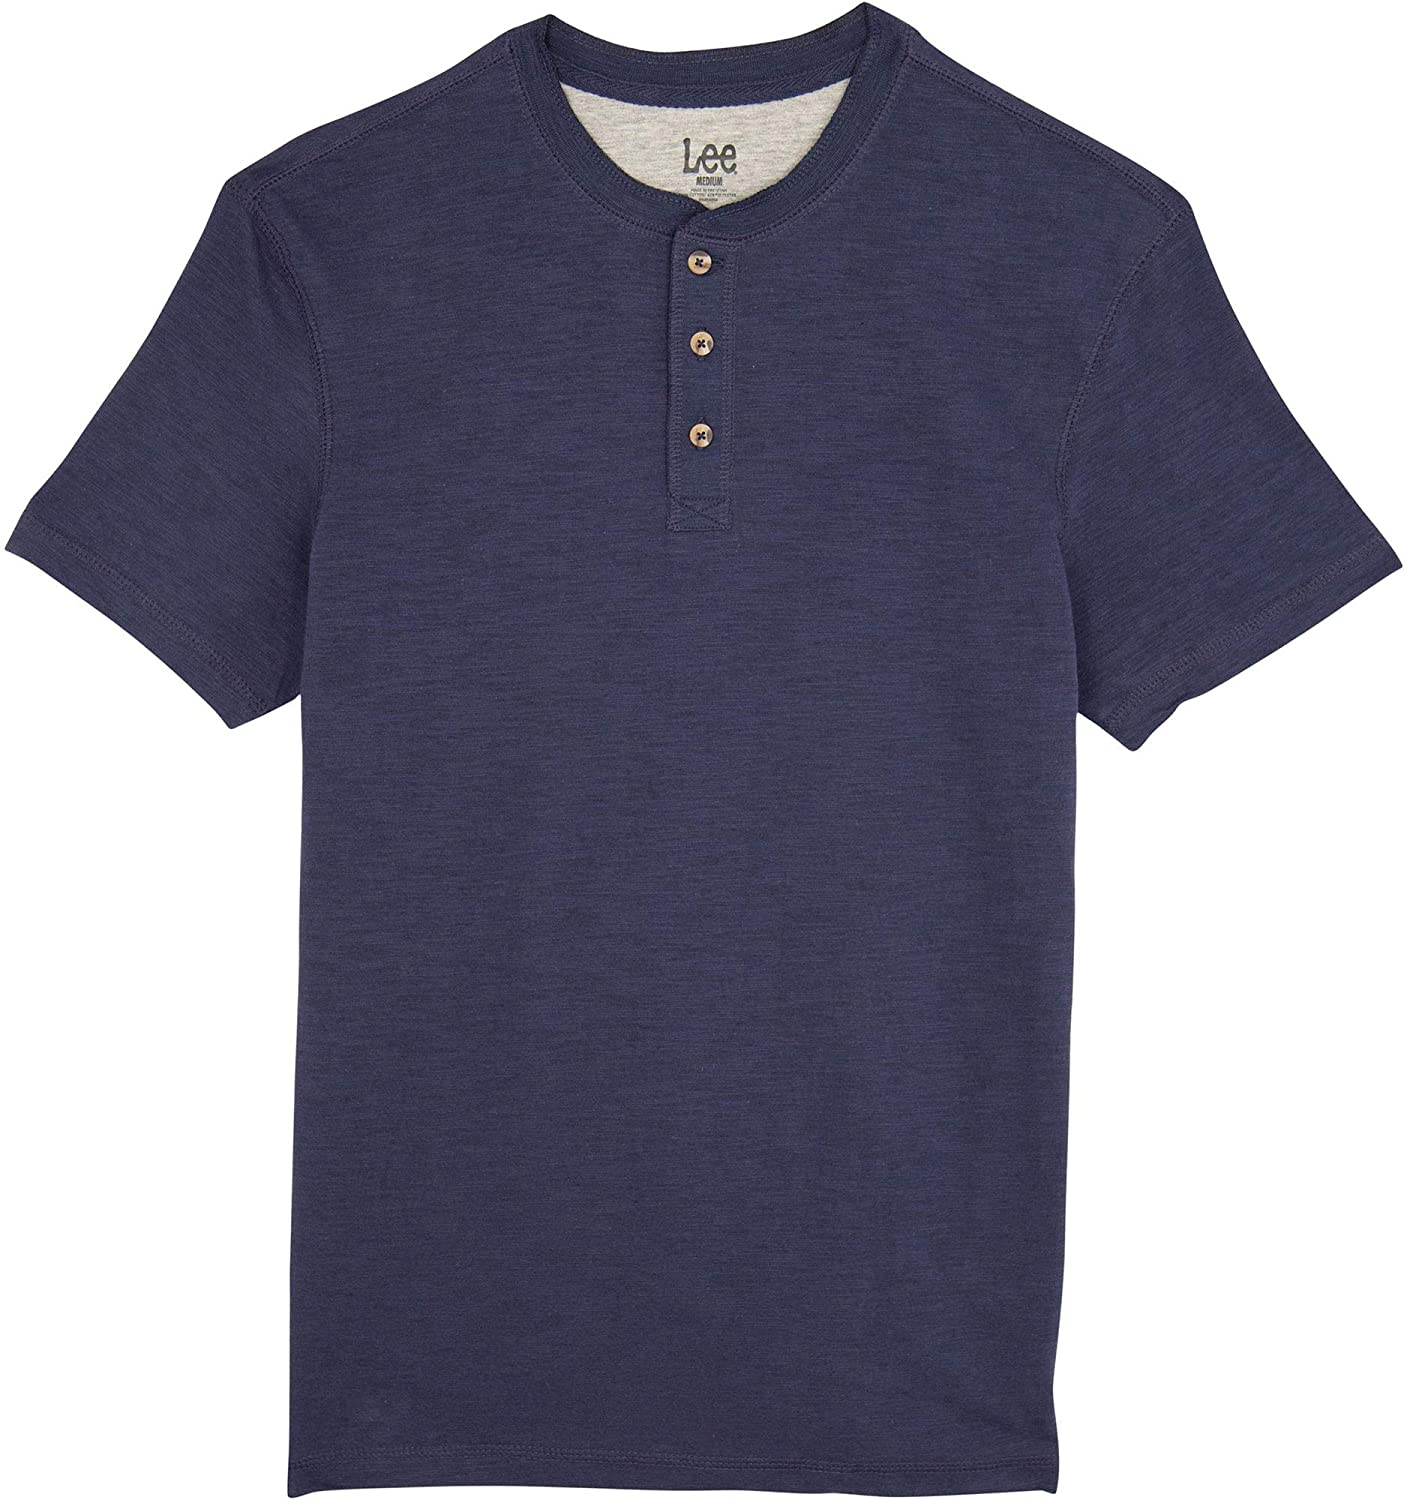 LEE Men's Short Sleeve Henley Shirt P000533380